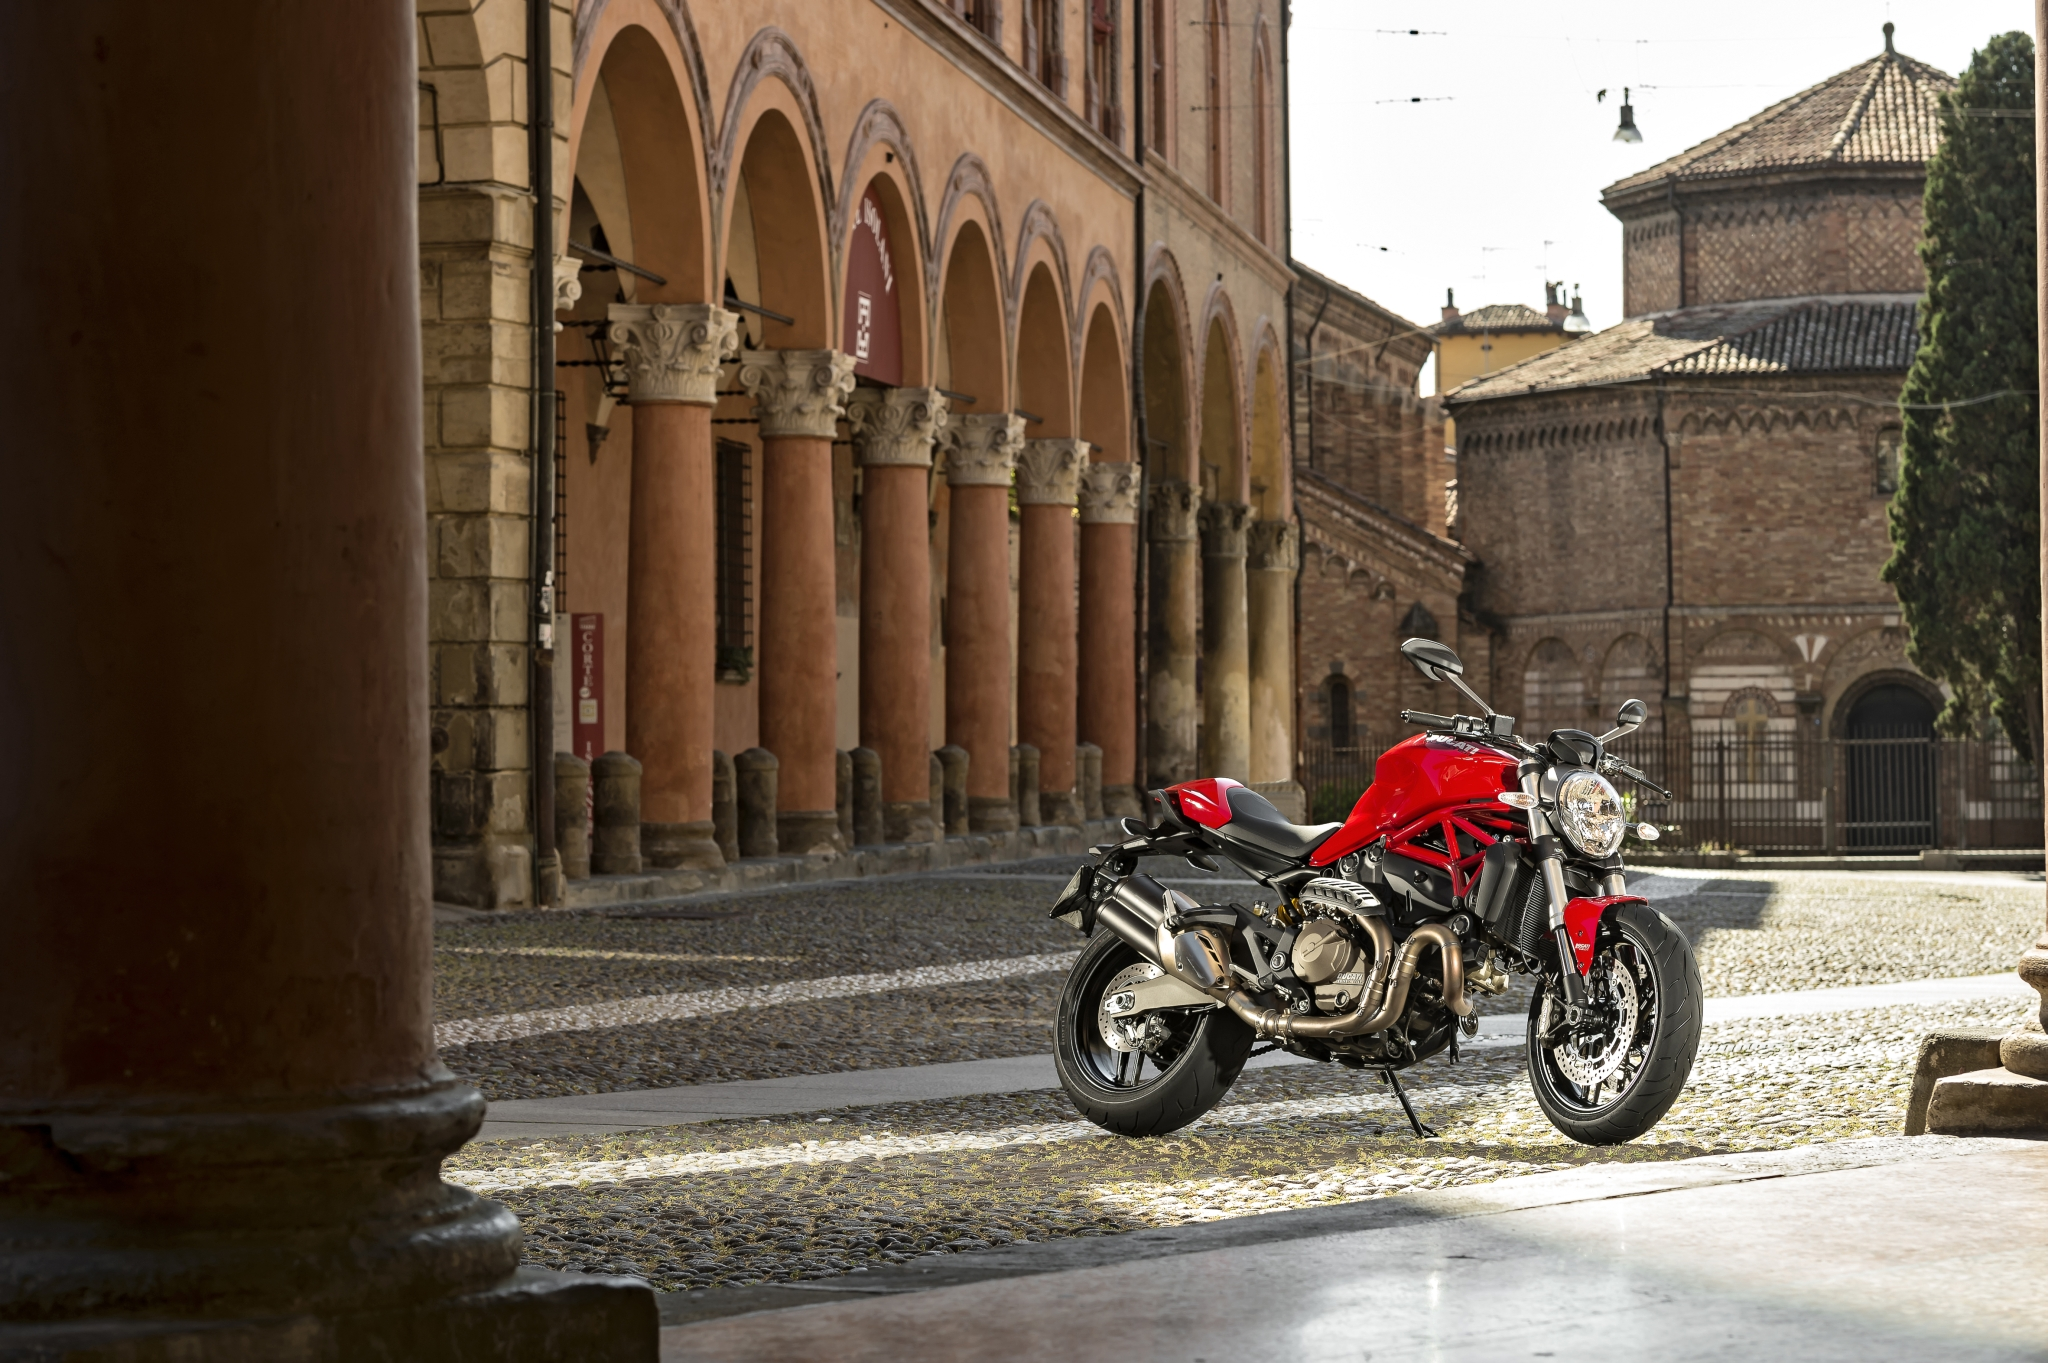 Here are some of the Ducati Monster wallpaper photos to